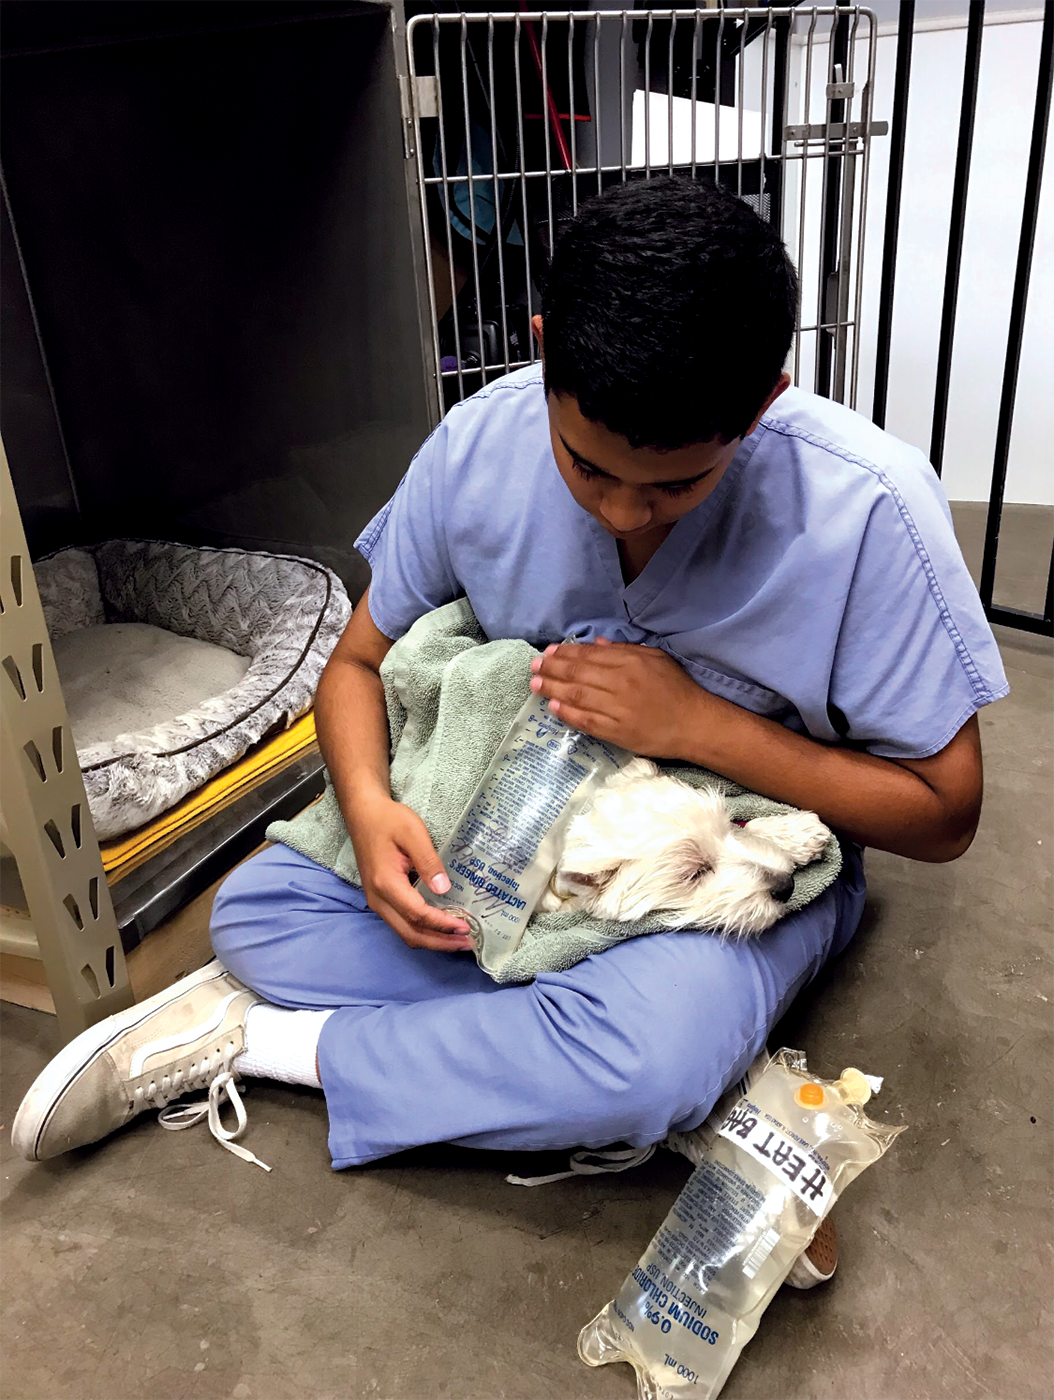 Eshan Selvan, veterinary assistant and junior, comforts a dog that went through a procedure. While Selvan assists in procedures like surgeries and examinations, he also works with animals before and after their procedures.